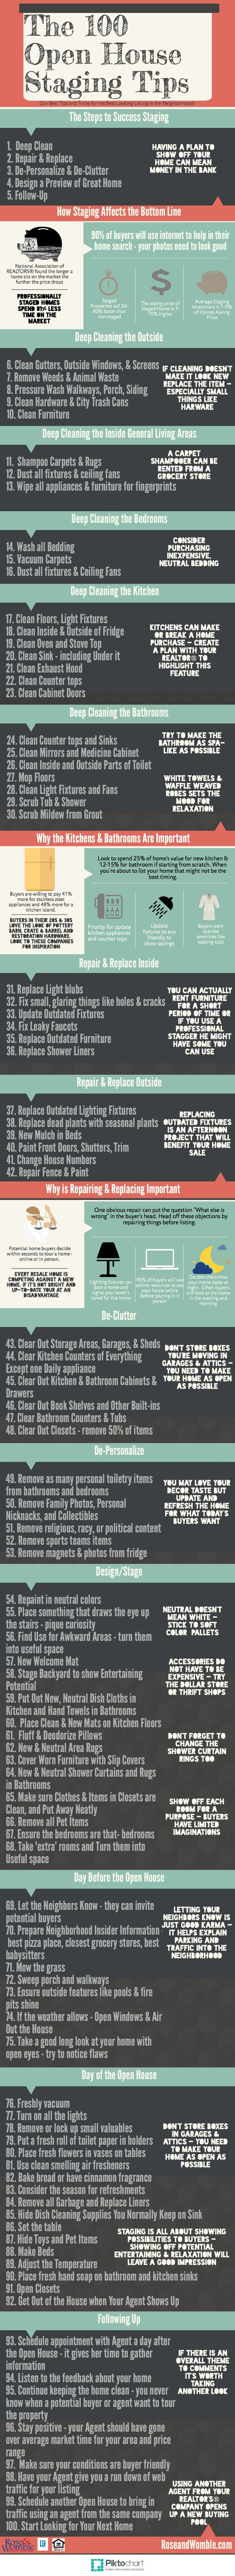 100 Open House Staging Tips #RealEstat #Infographic